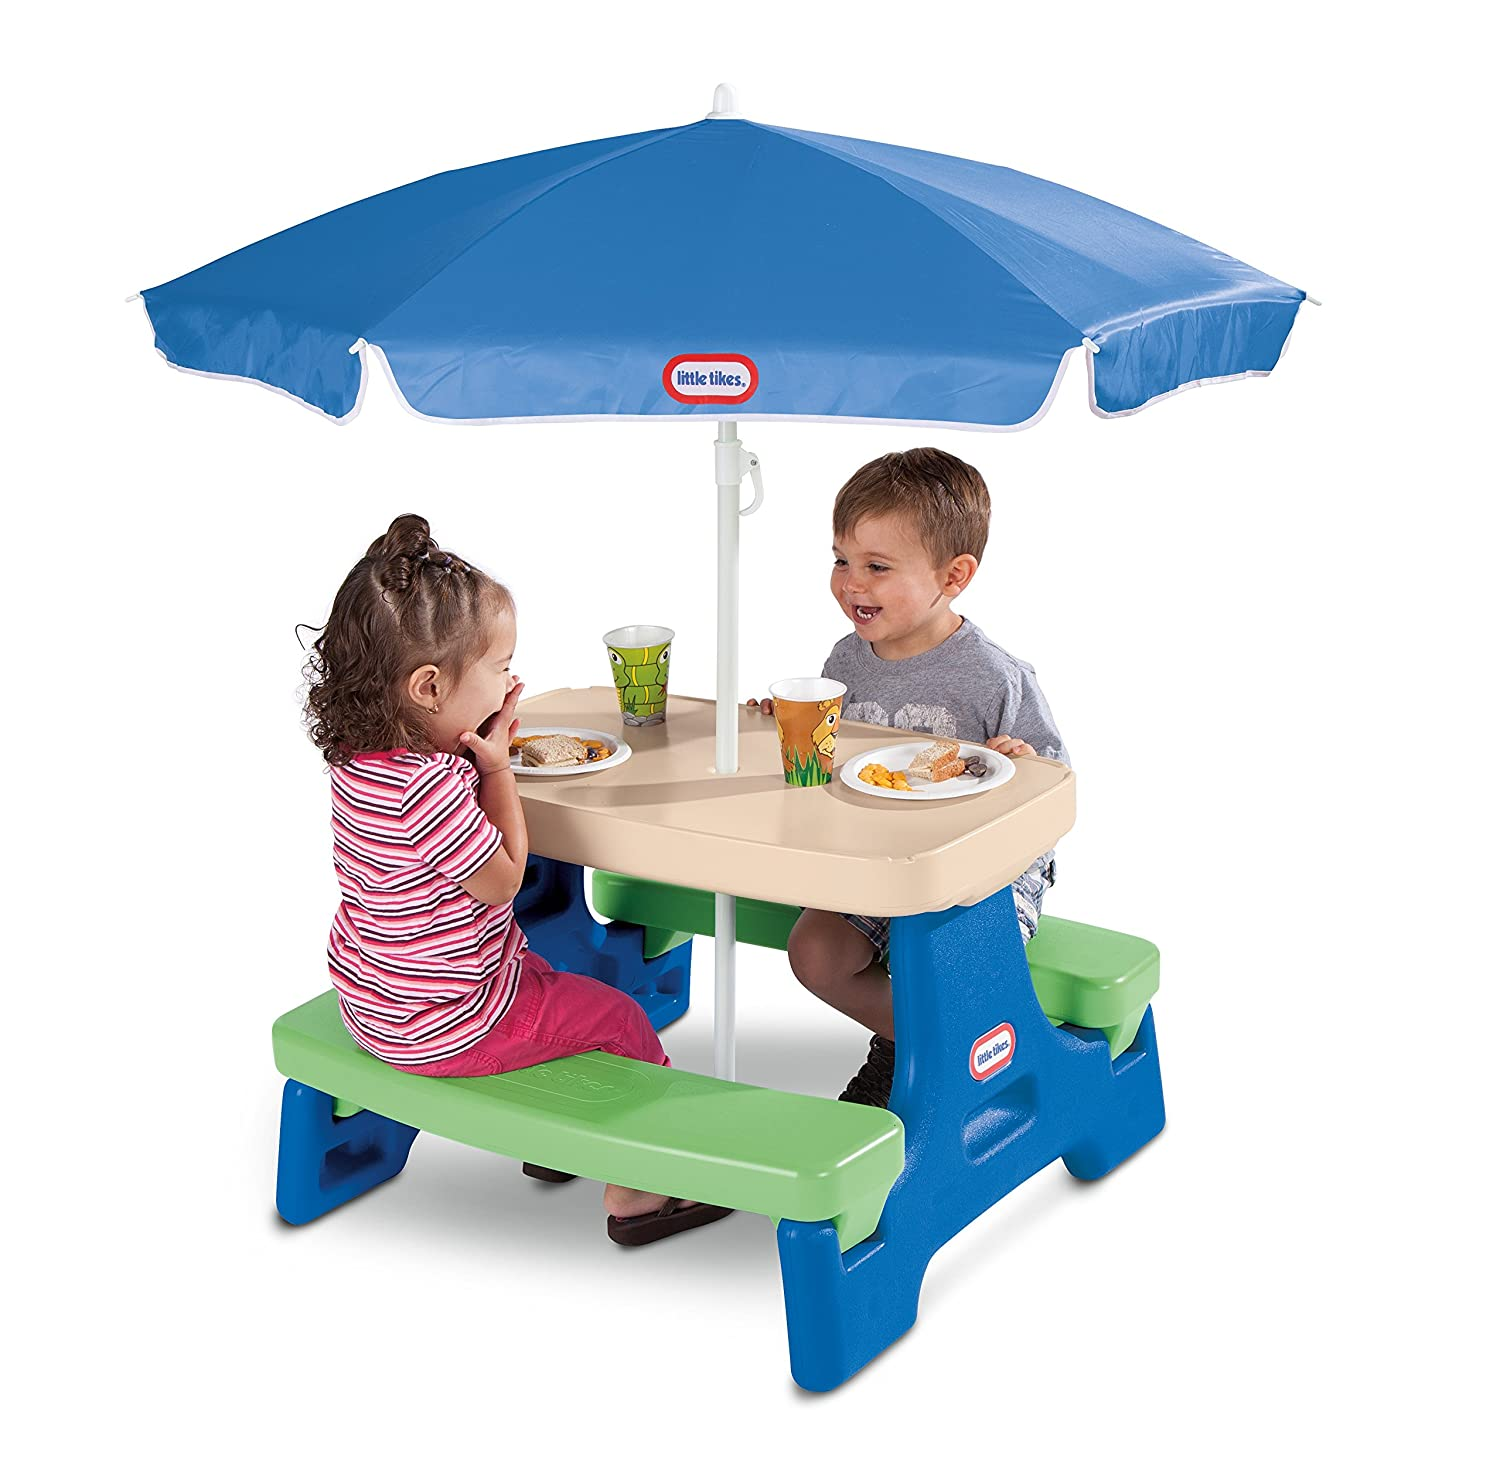 An Image of Little Tikes Easy Store Junior Picnic Table with Umbrella, Blue/Green